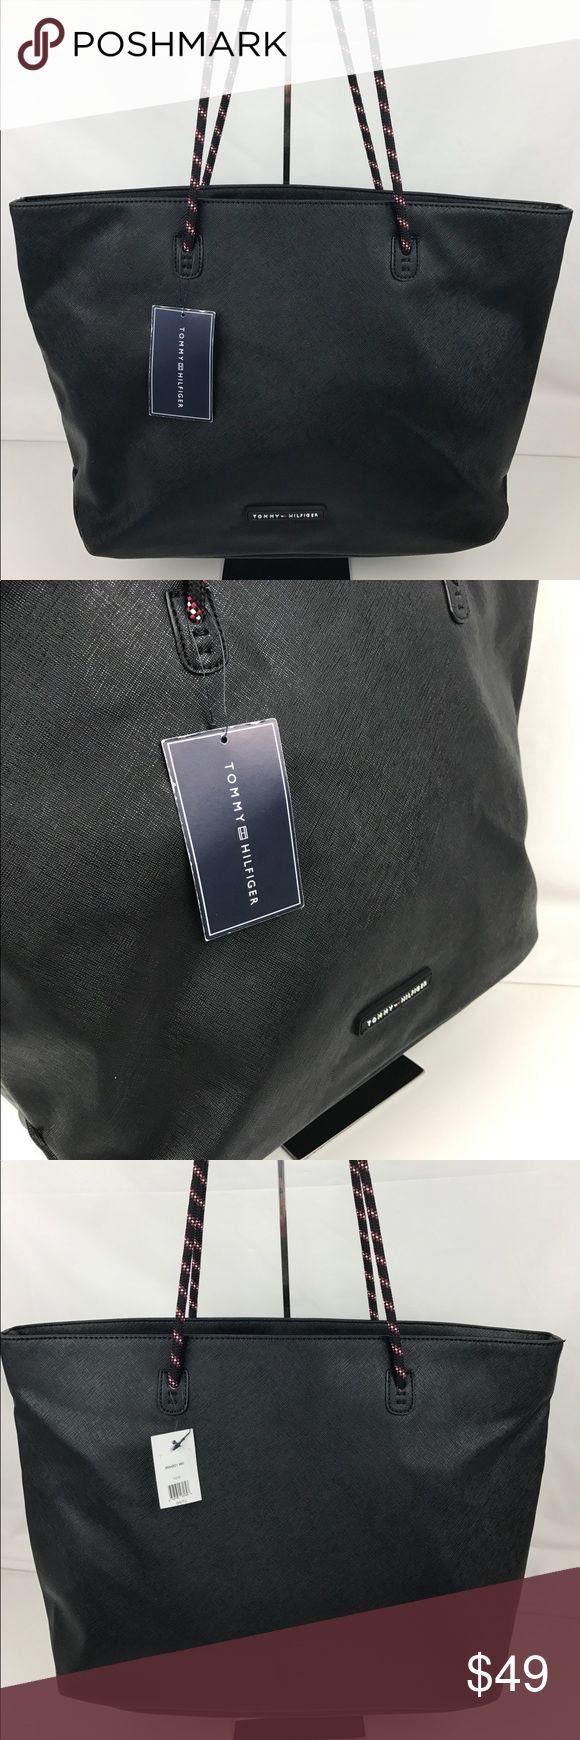 """Tommy Hilfiger Sport Large Tote Authentic. New with Tag  Pack your essentials in style when you're on the go with this sporty-sleek tote from Tommy Hilfiger, featuring a roomy interior. Large sized bag; 17-1/2""""W x 13""""H x 5""""D. 9""""L bungee cord double handles. RB807  Thank you for your interest!  PLEASE - NO TRADES / NO LOW BALL OFFERS / NO OFFERS IN COMMENTS - USE THE OFFER LINK :-) Tommy Hilfiger Bags Totes"""